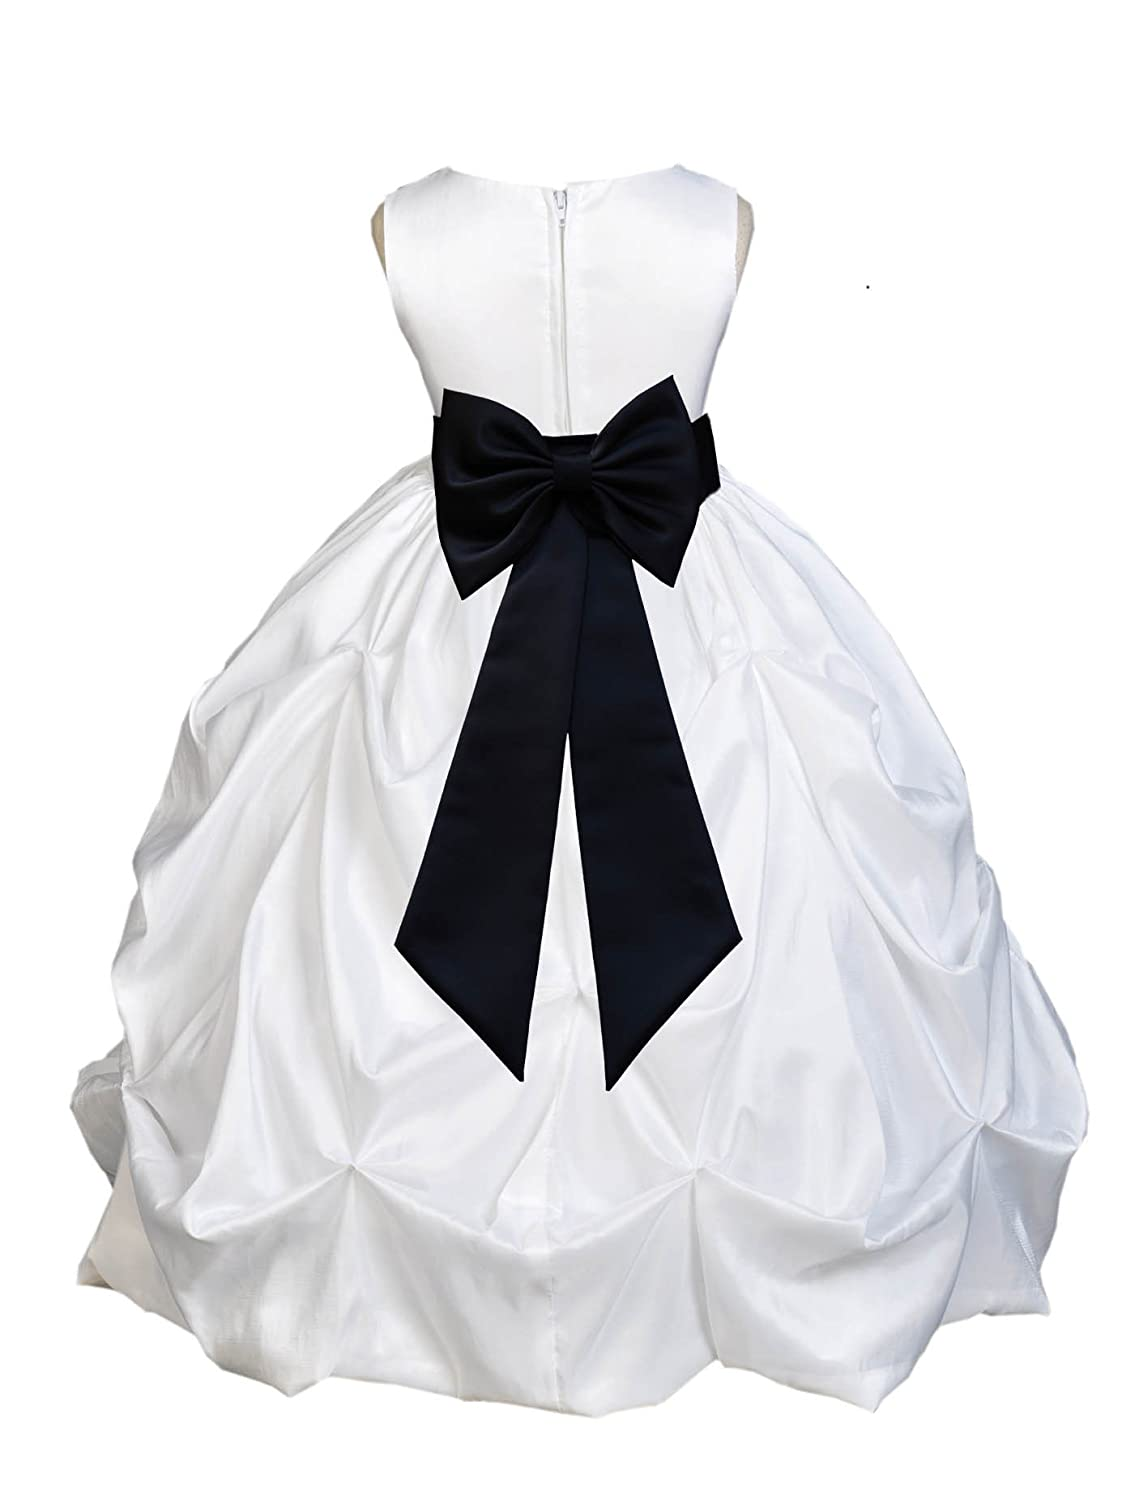 ekidsbridal White Satin Taffeta Pick-up Bubble Flower Girl Dress Christening Dresses 301T